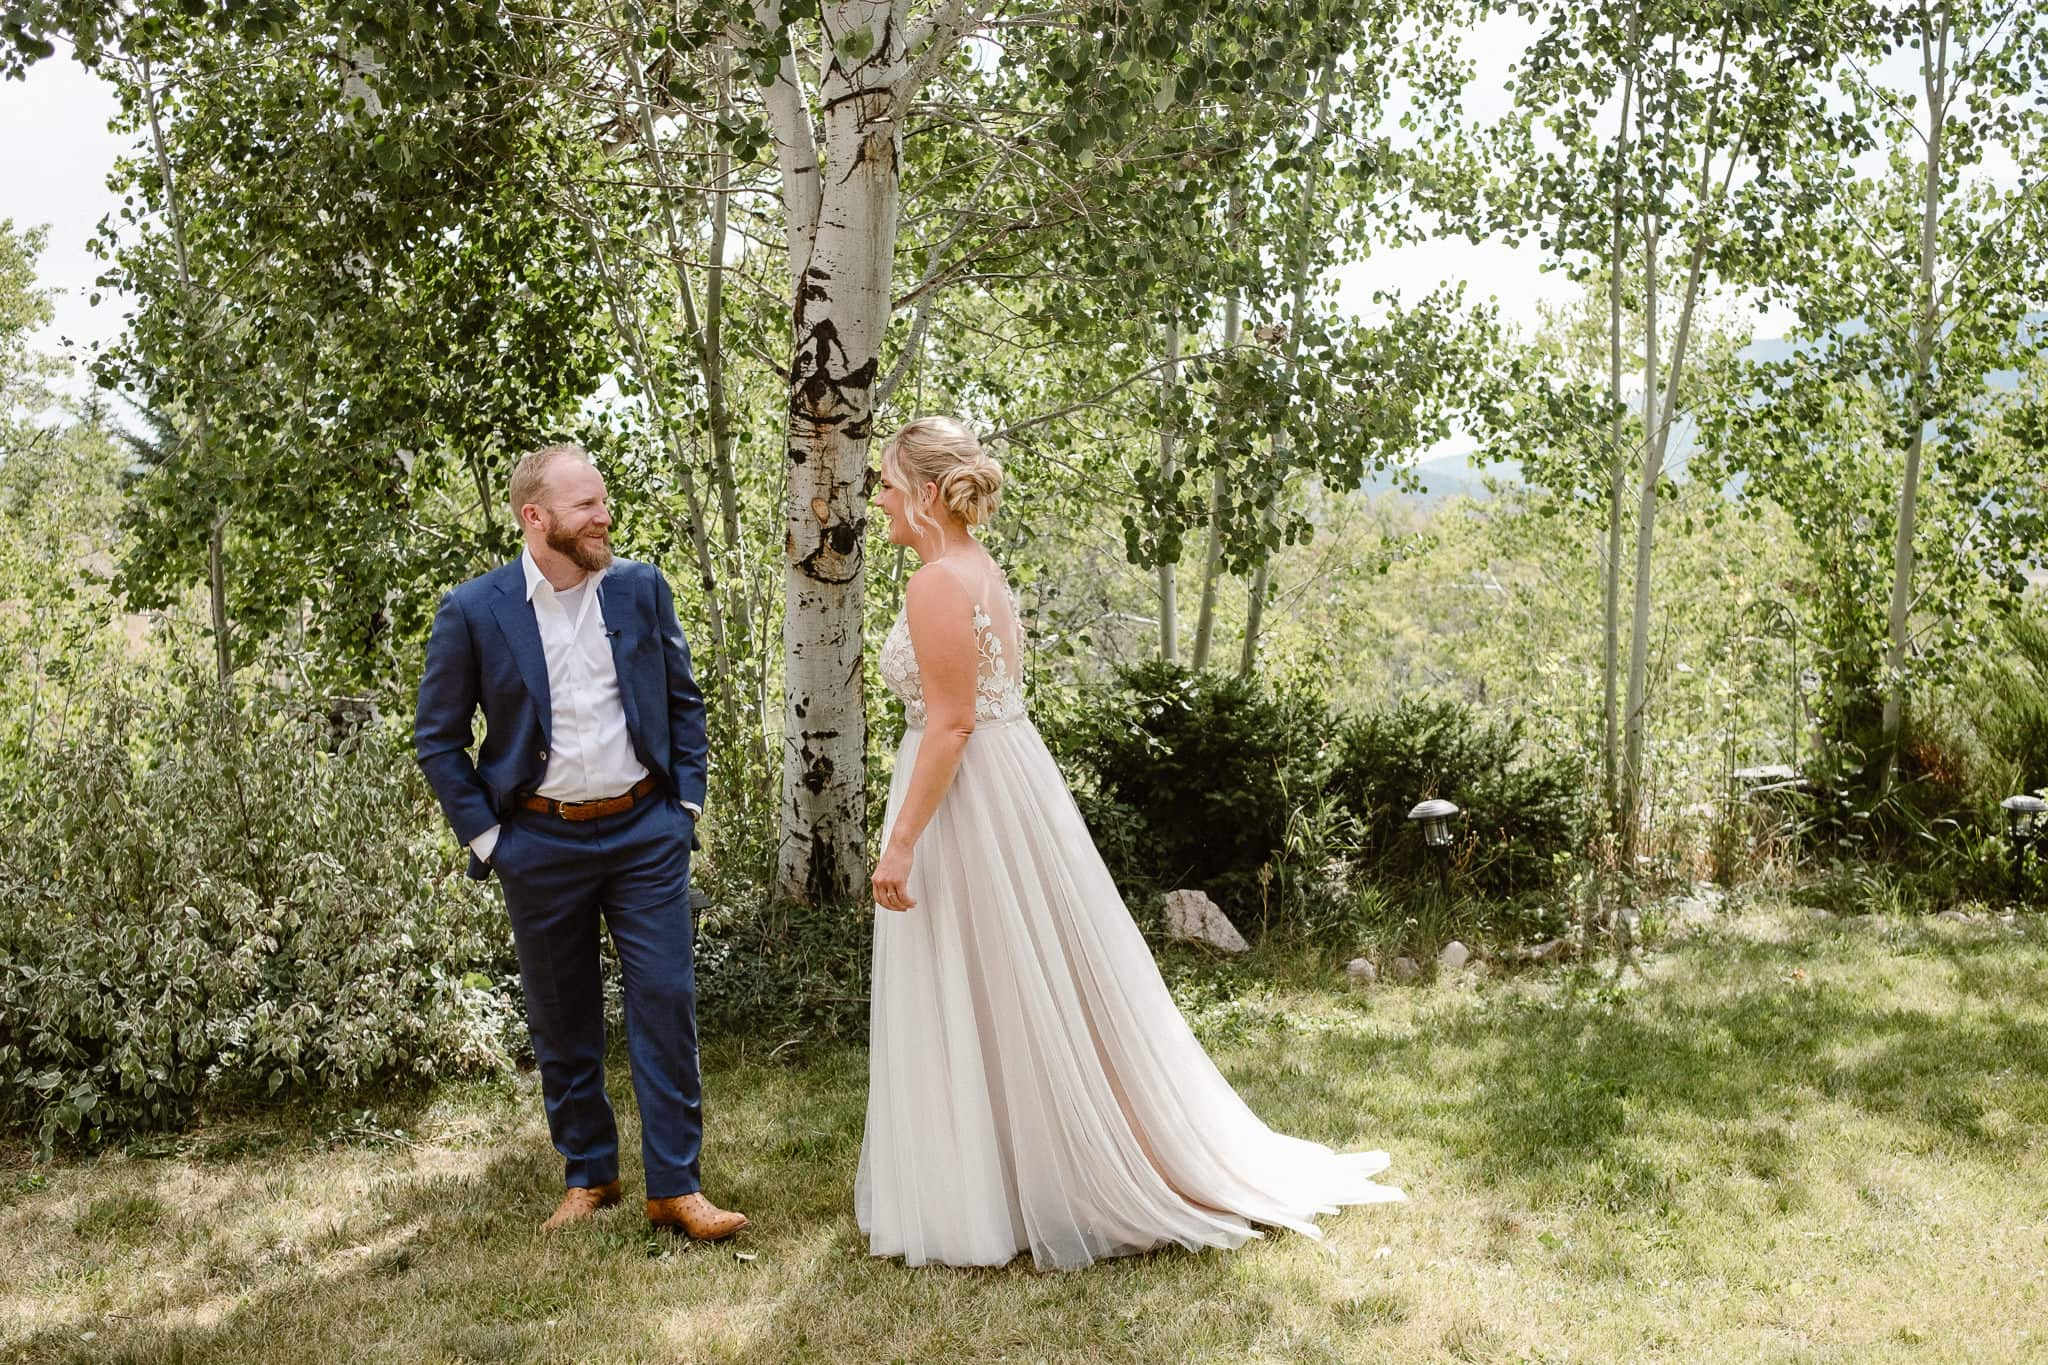 Steamboat Springs wedding photographer, La Joya Dulce wedding, Colorado ranch wedding venues, bride and groom first look, first look photos, wedding photographs